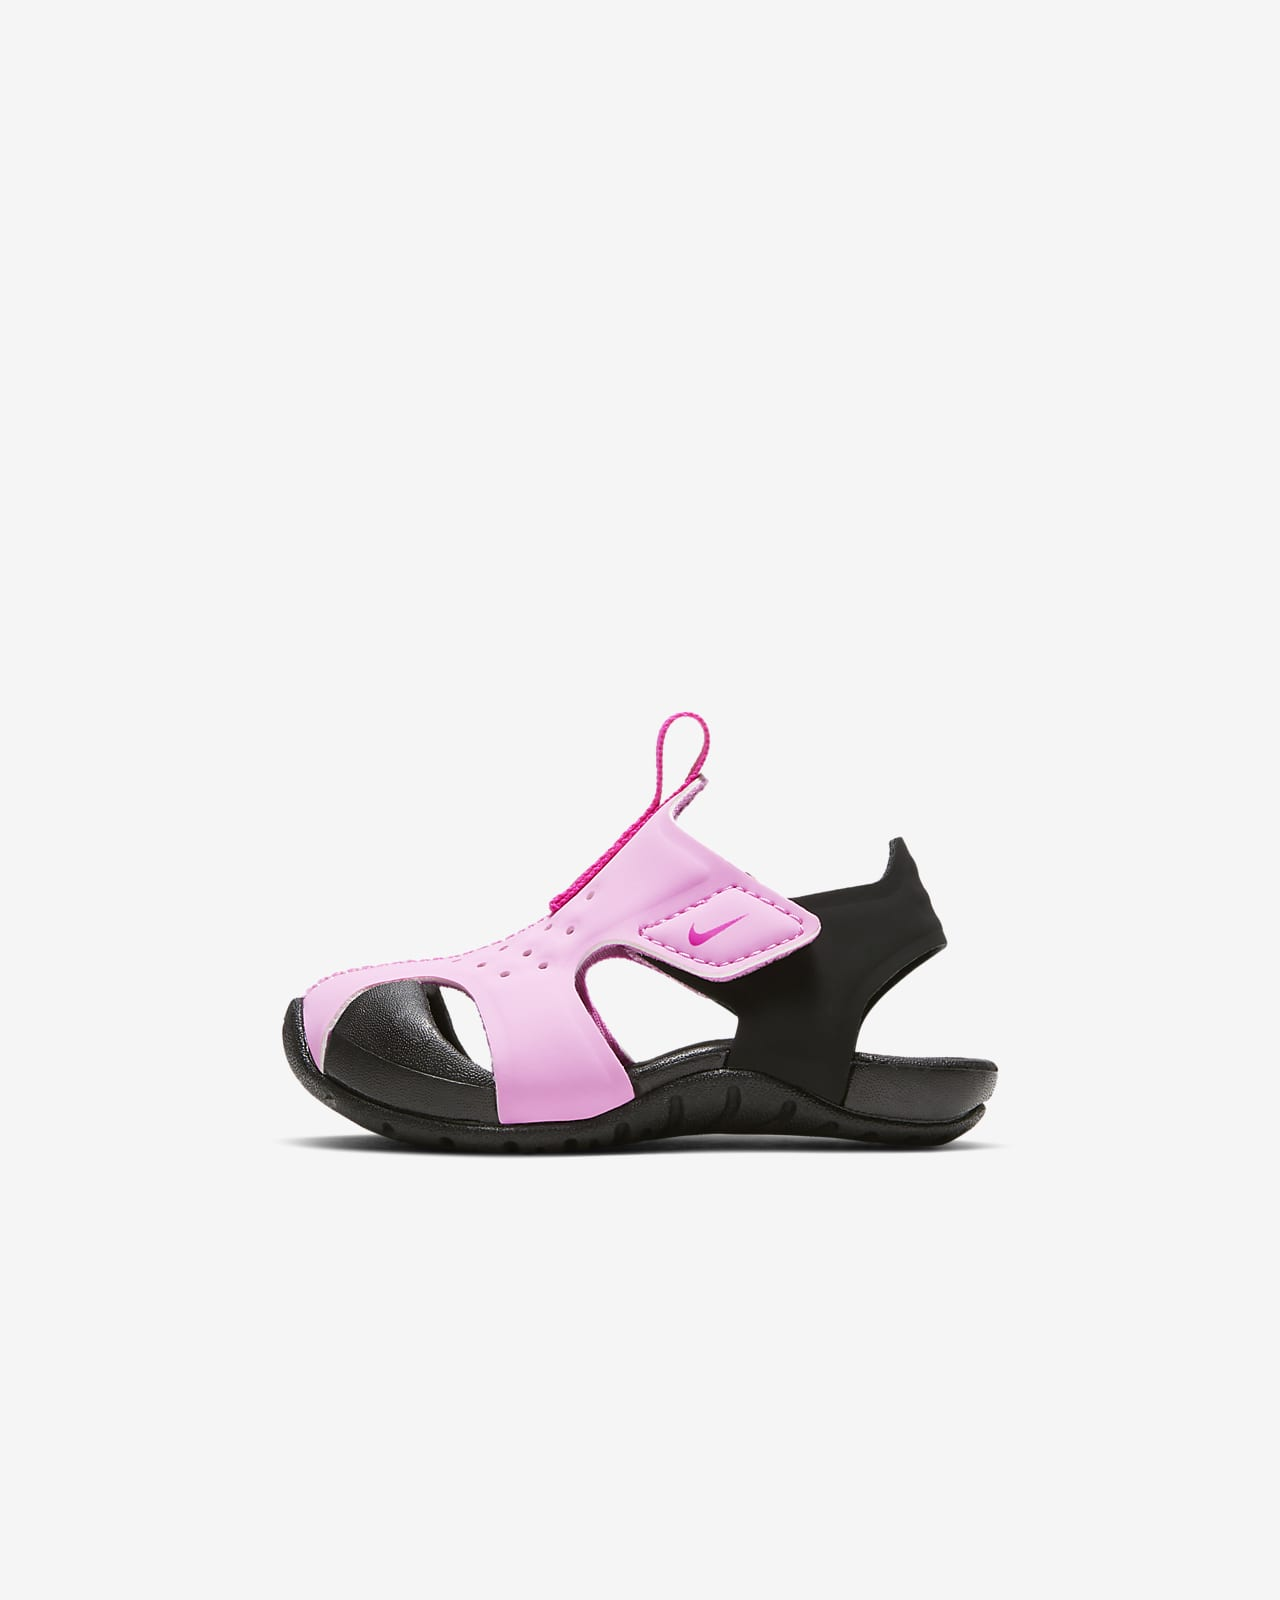 Nike Sunray Protect 2 Baby and Toddler Sandal